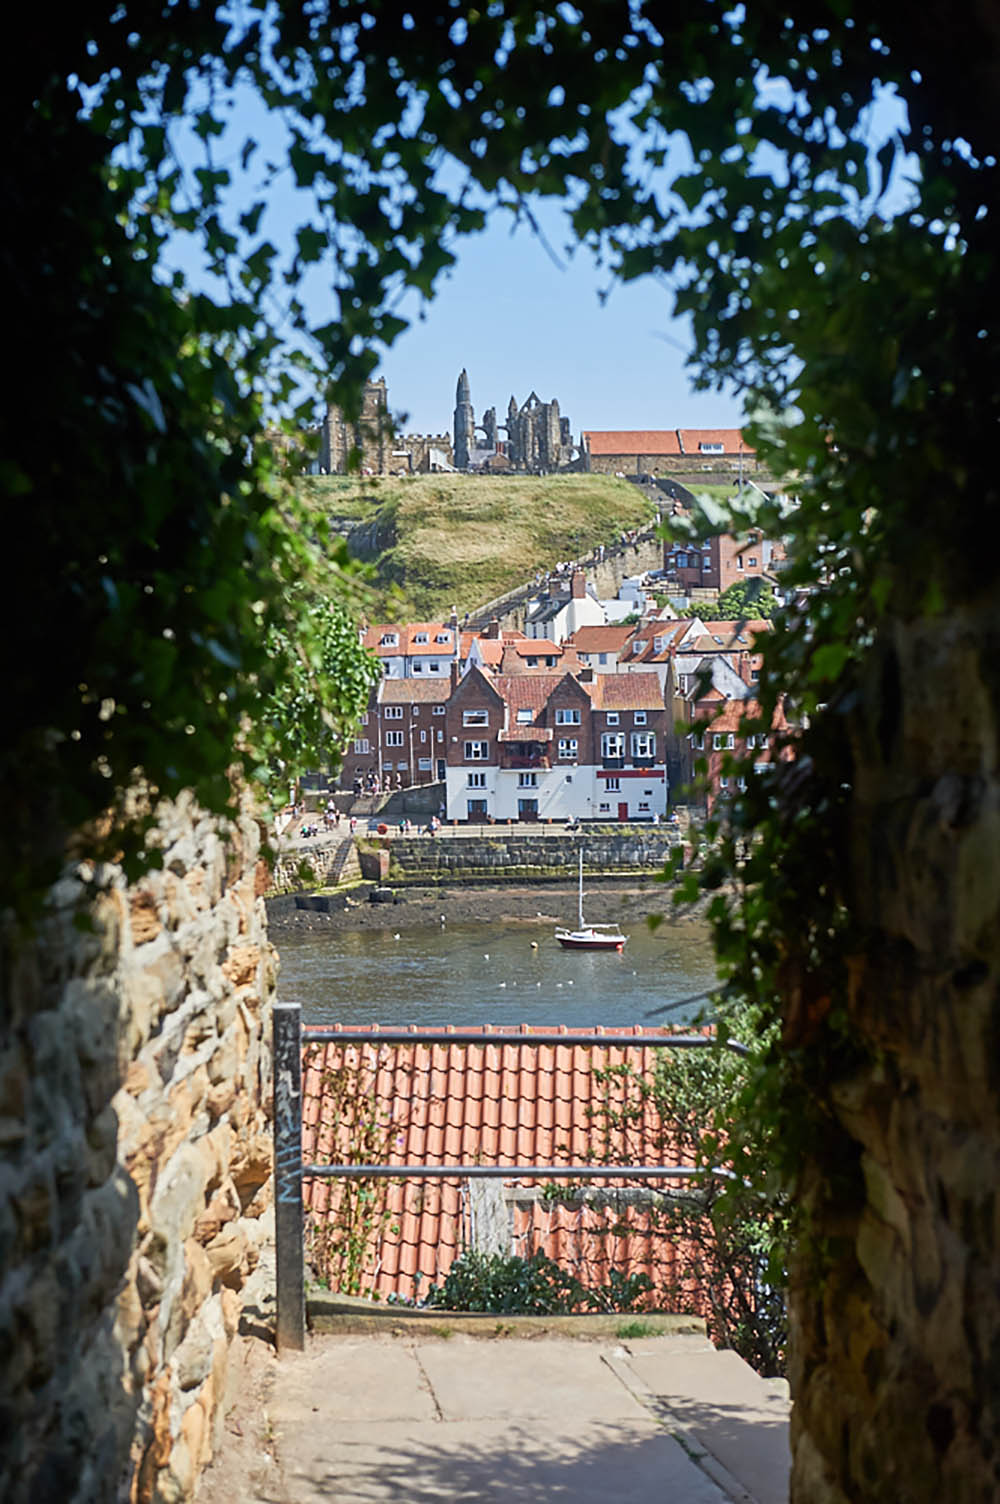 whitby, yorkshire, england, uk, fishing, town, stadt, urlaub, holiday, travel, reise, summer, abbey